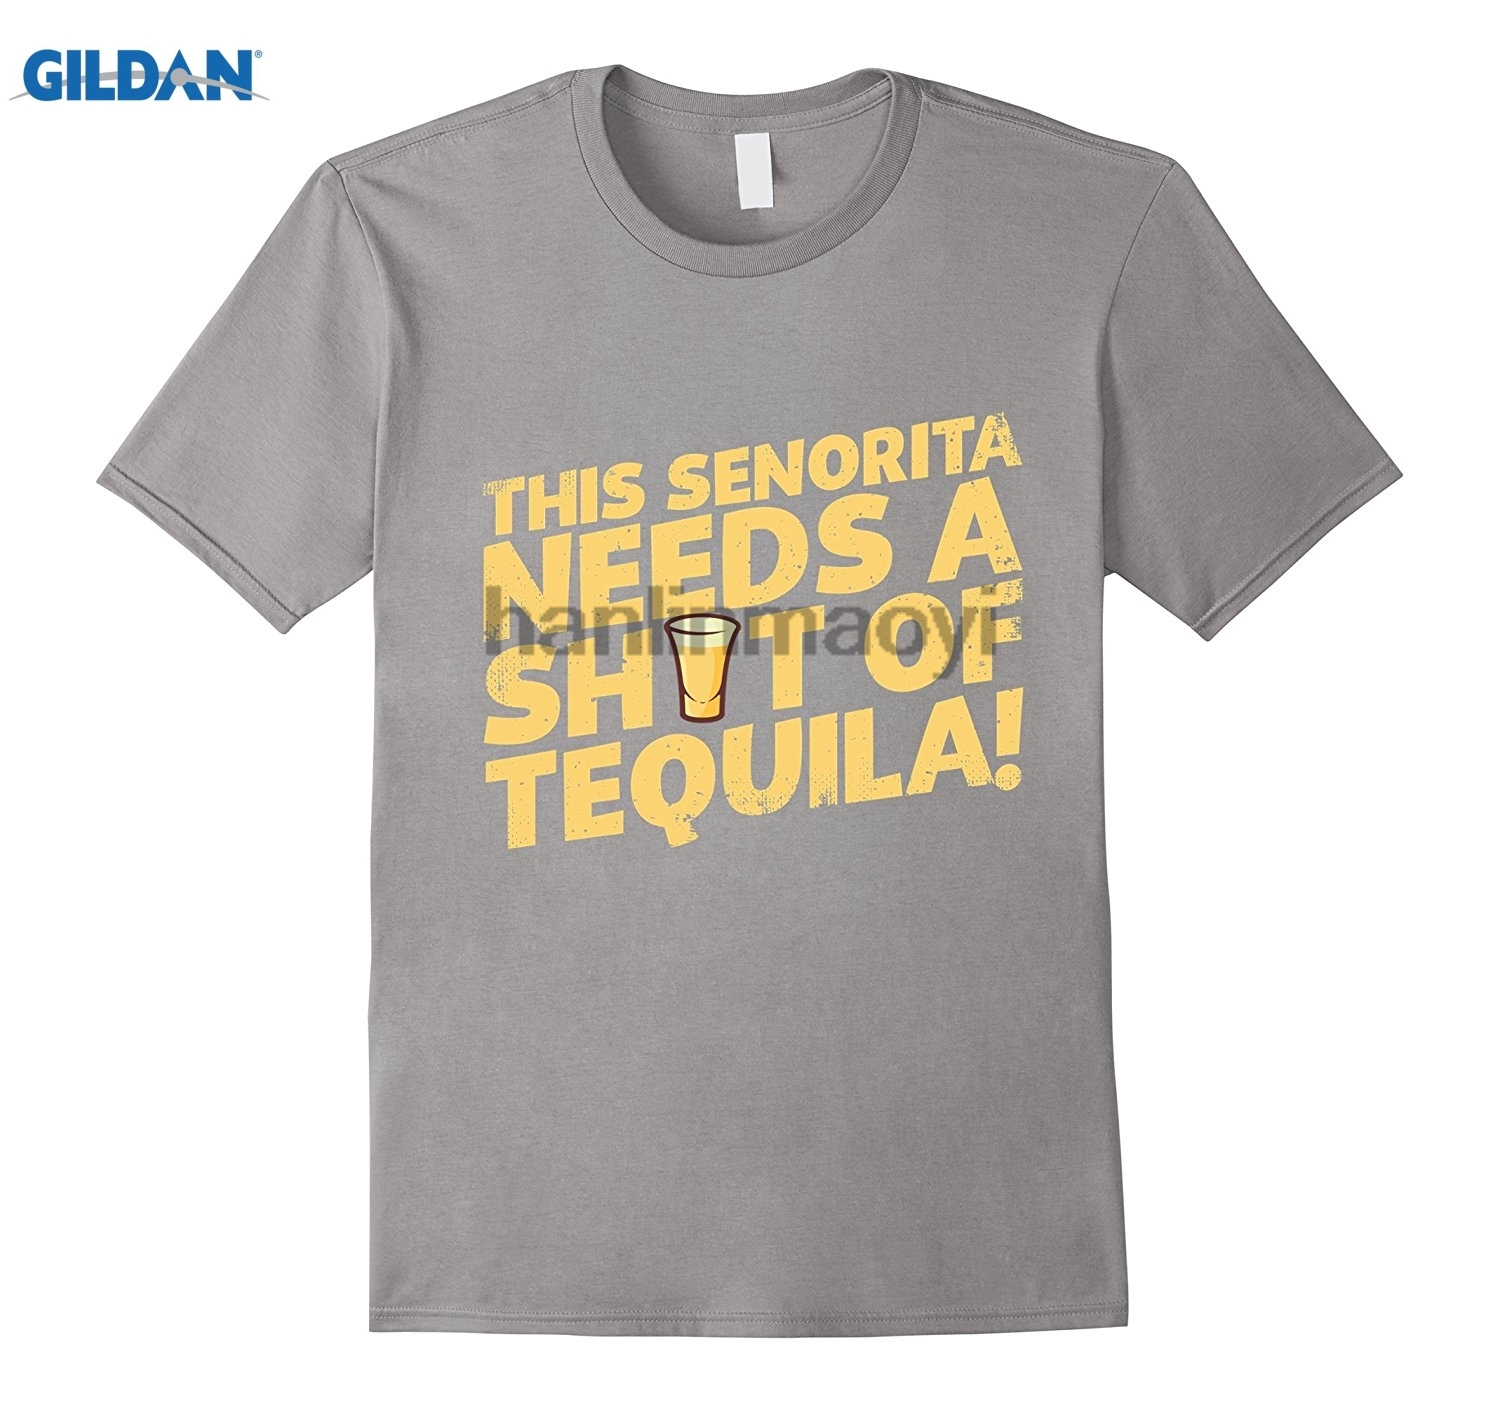 GILDAN This Senorita Needs A Shot of TEQUILA Shirt